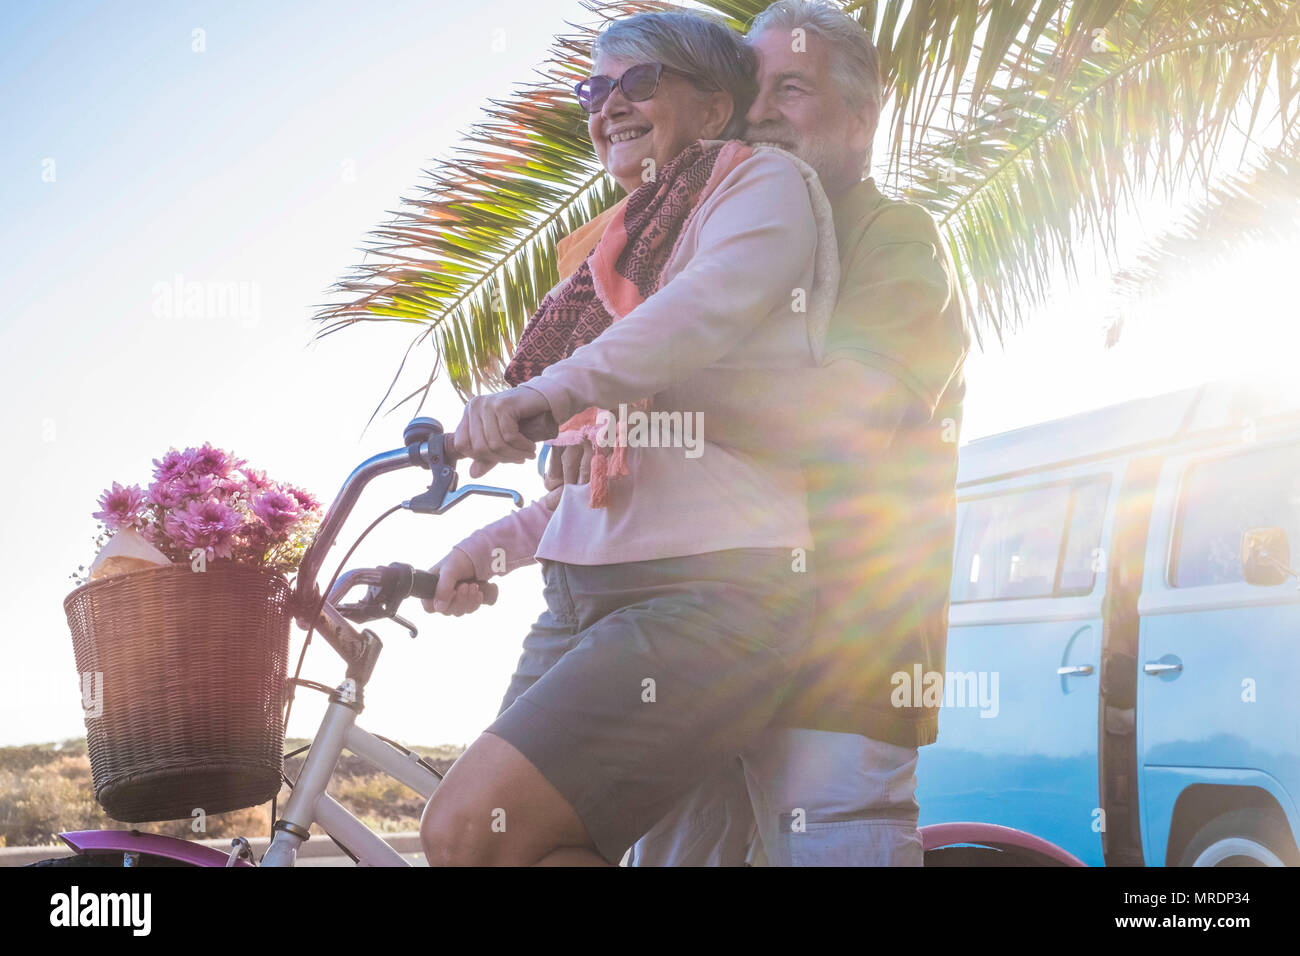 nice beautiful couple of seniors grandfathers going together on a bicycle outdoor in a tropical place. old vintage blue van in the background. happine - Stock Image